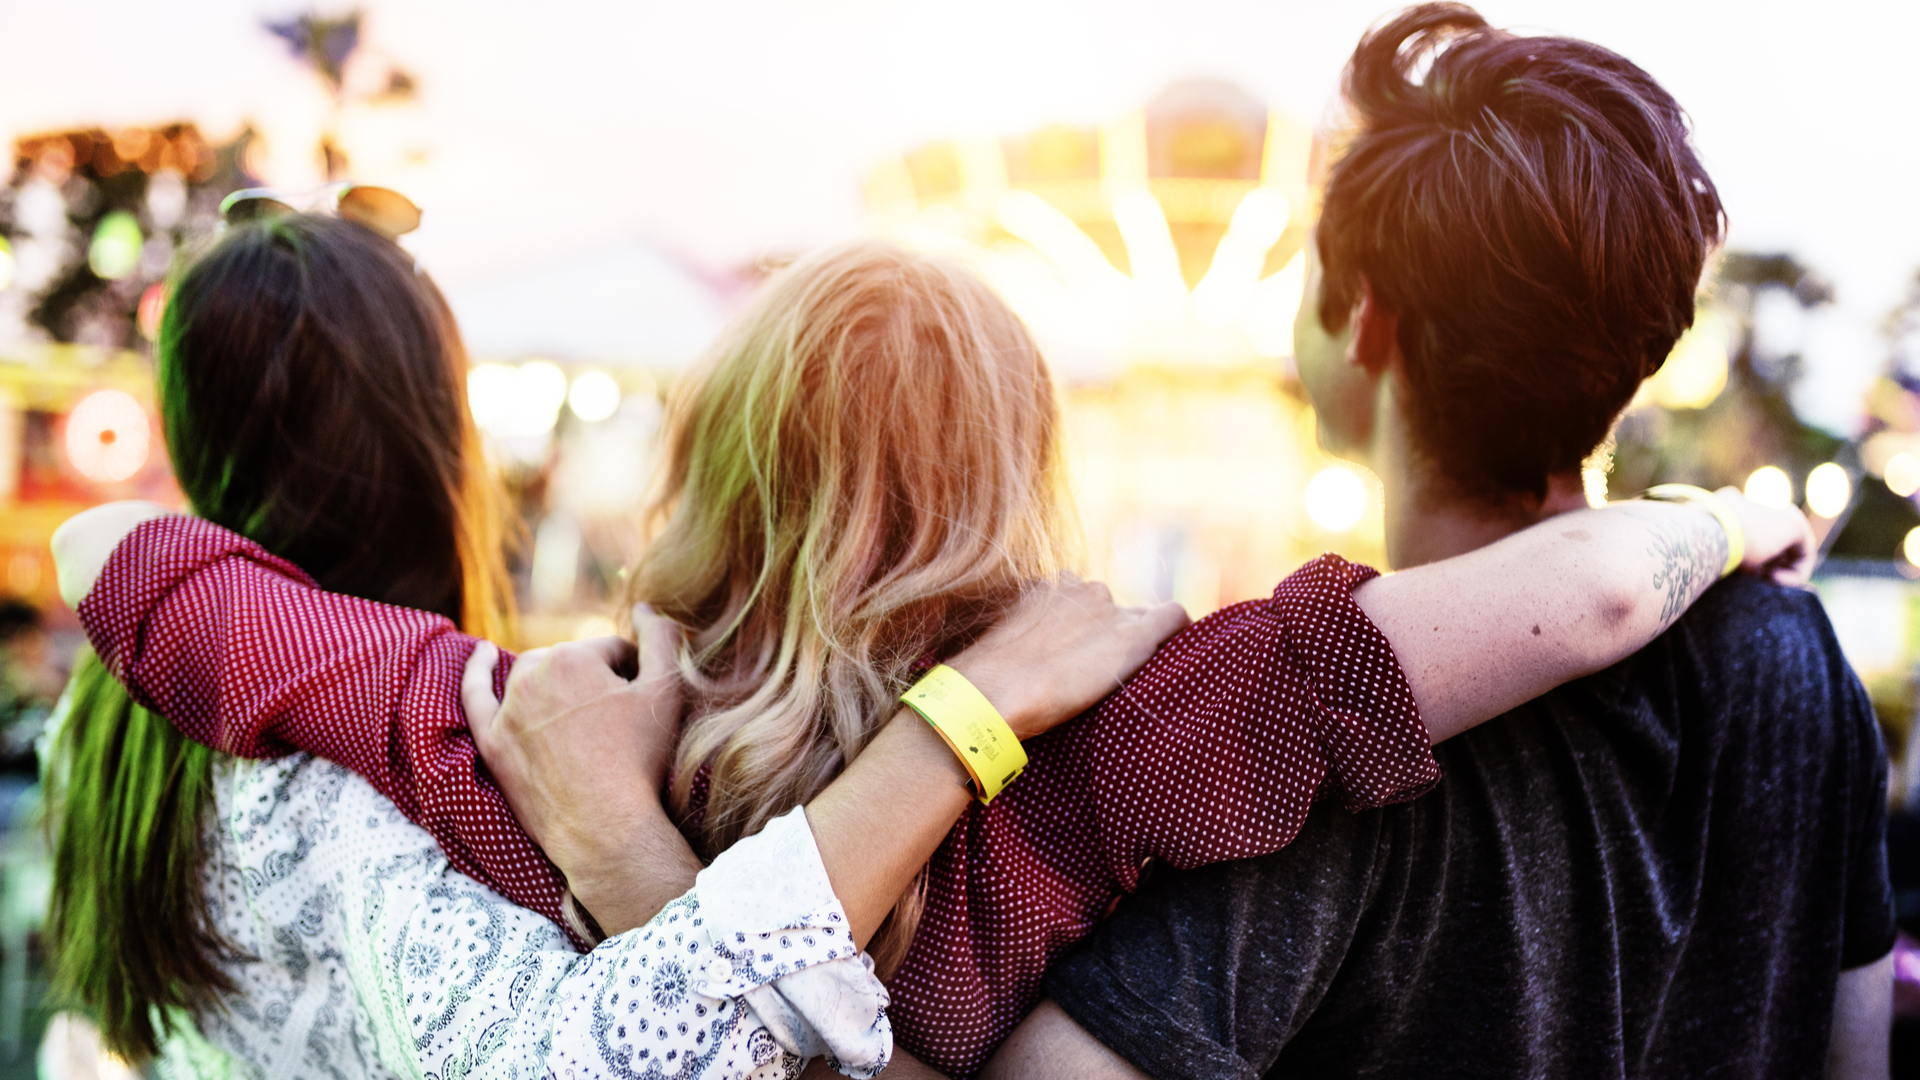 Three people linking arms